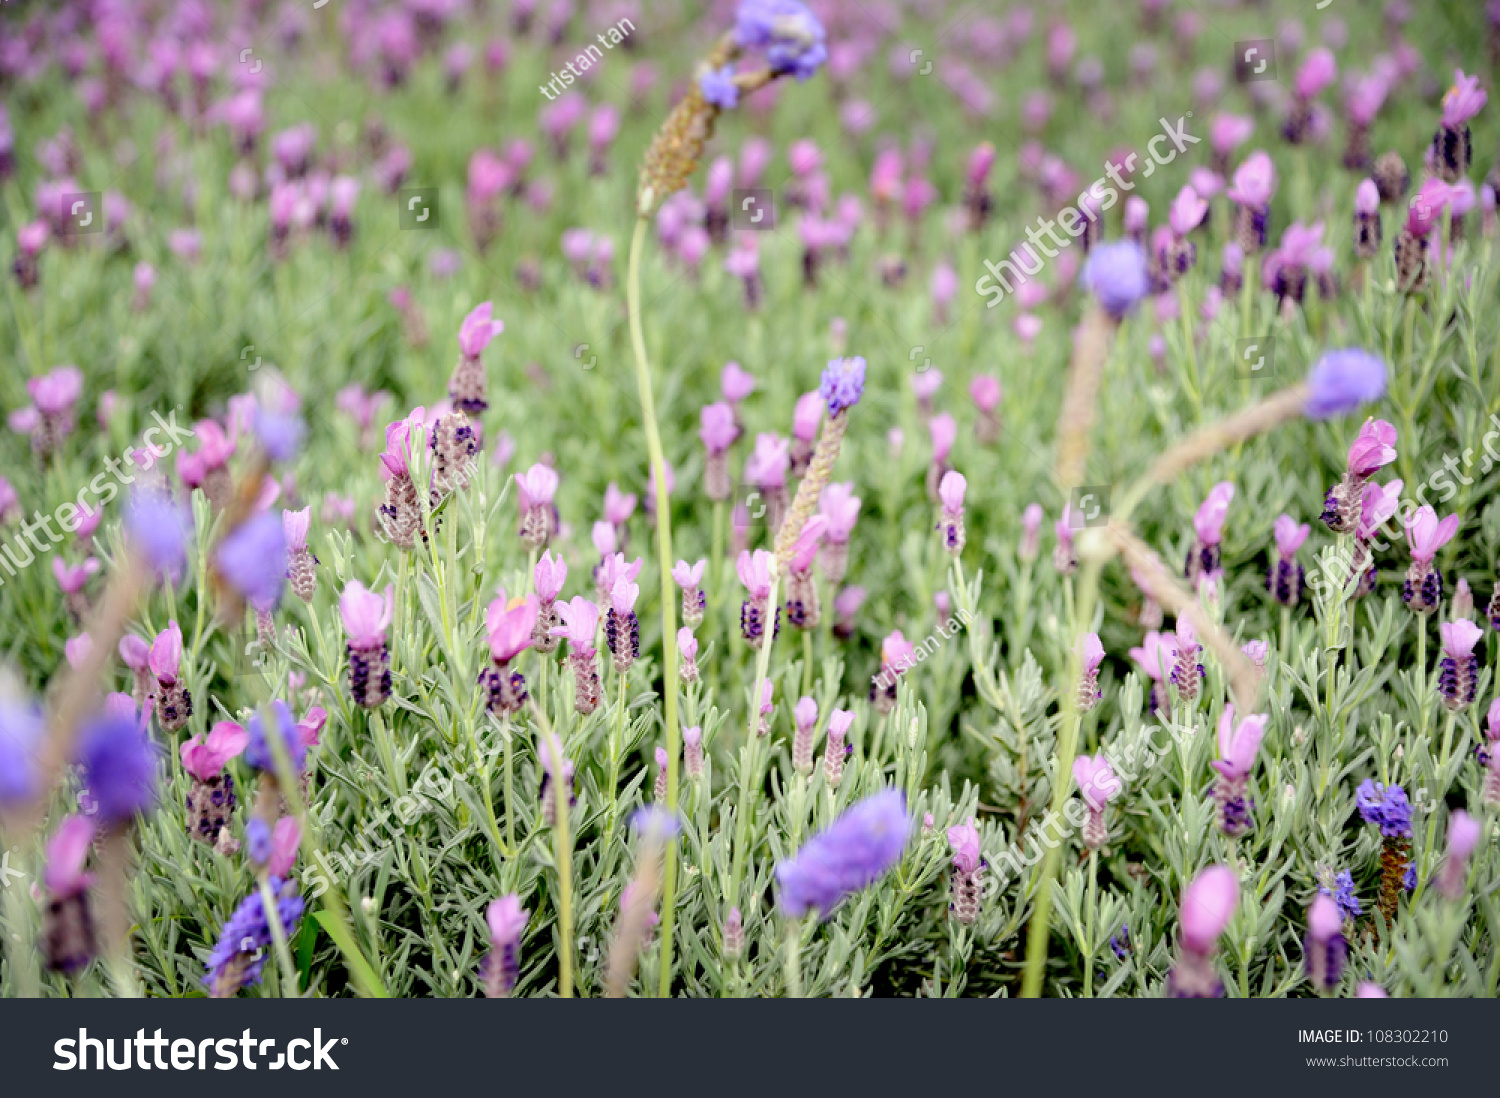 Beautiful lavender flowers taipei garden taiwan stock photo edit beautiful lavender flowers in taipei garden taiwan izmirmasajfo